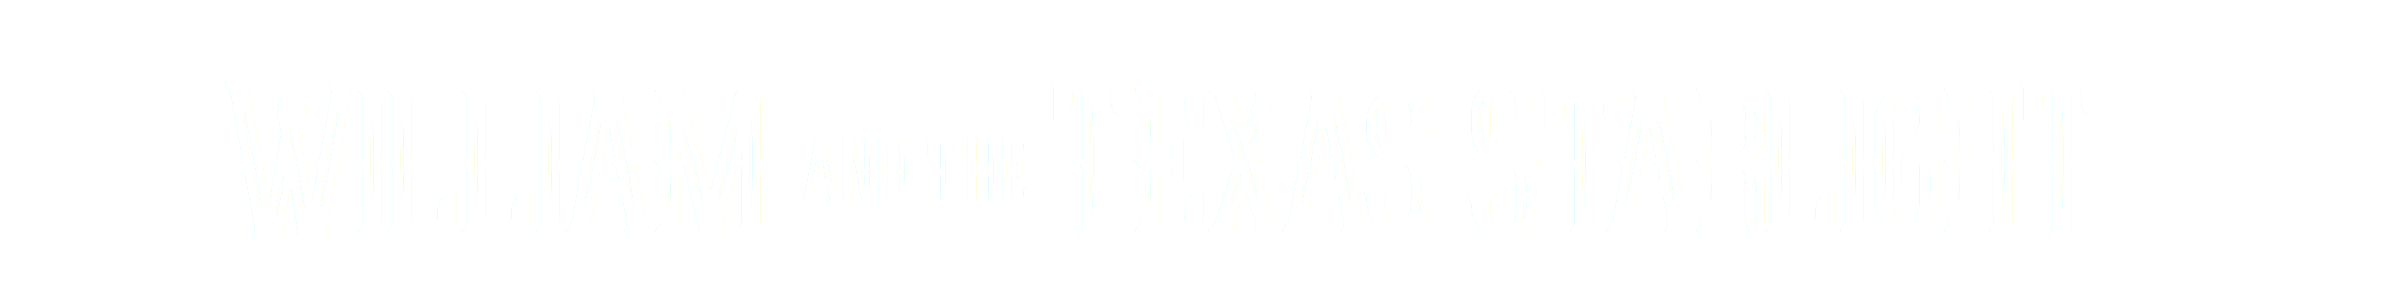 William and the Texas Starlight